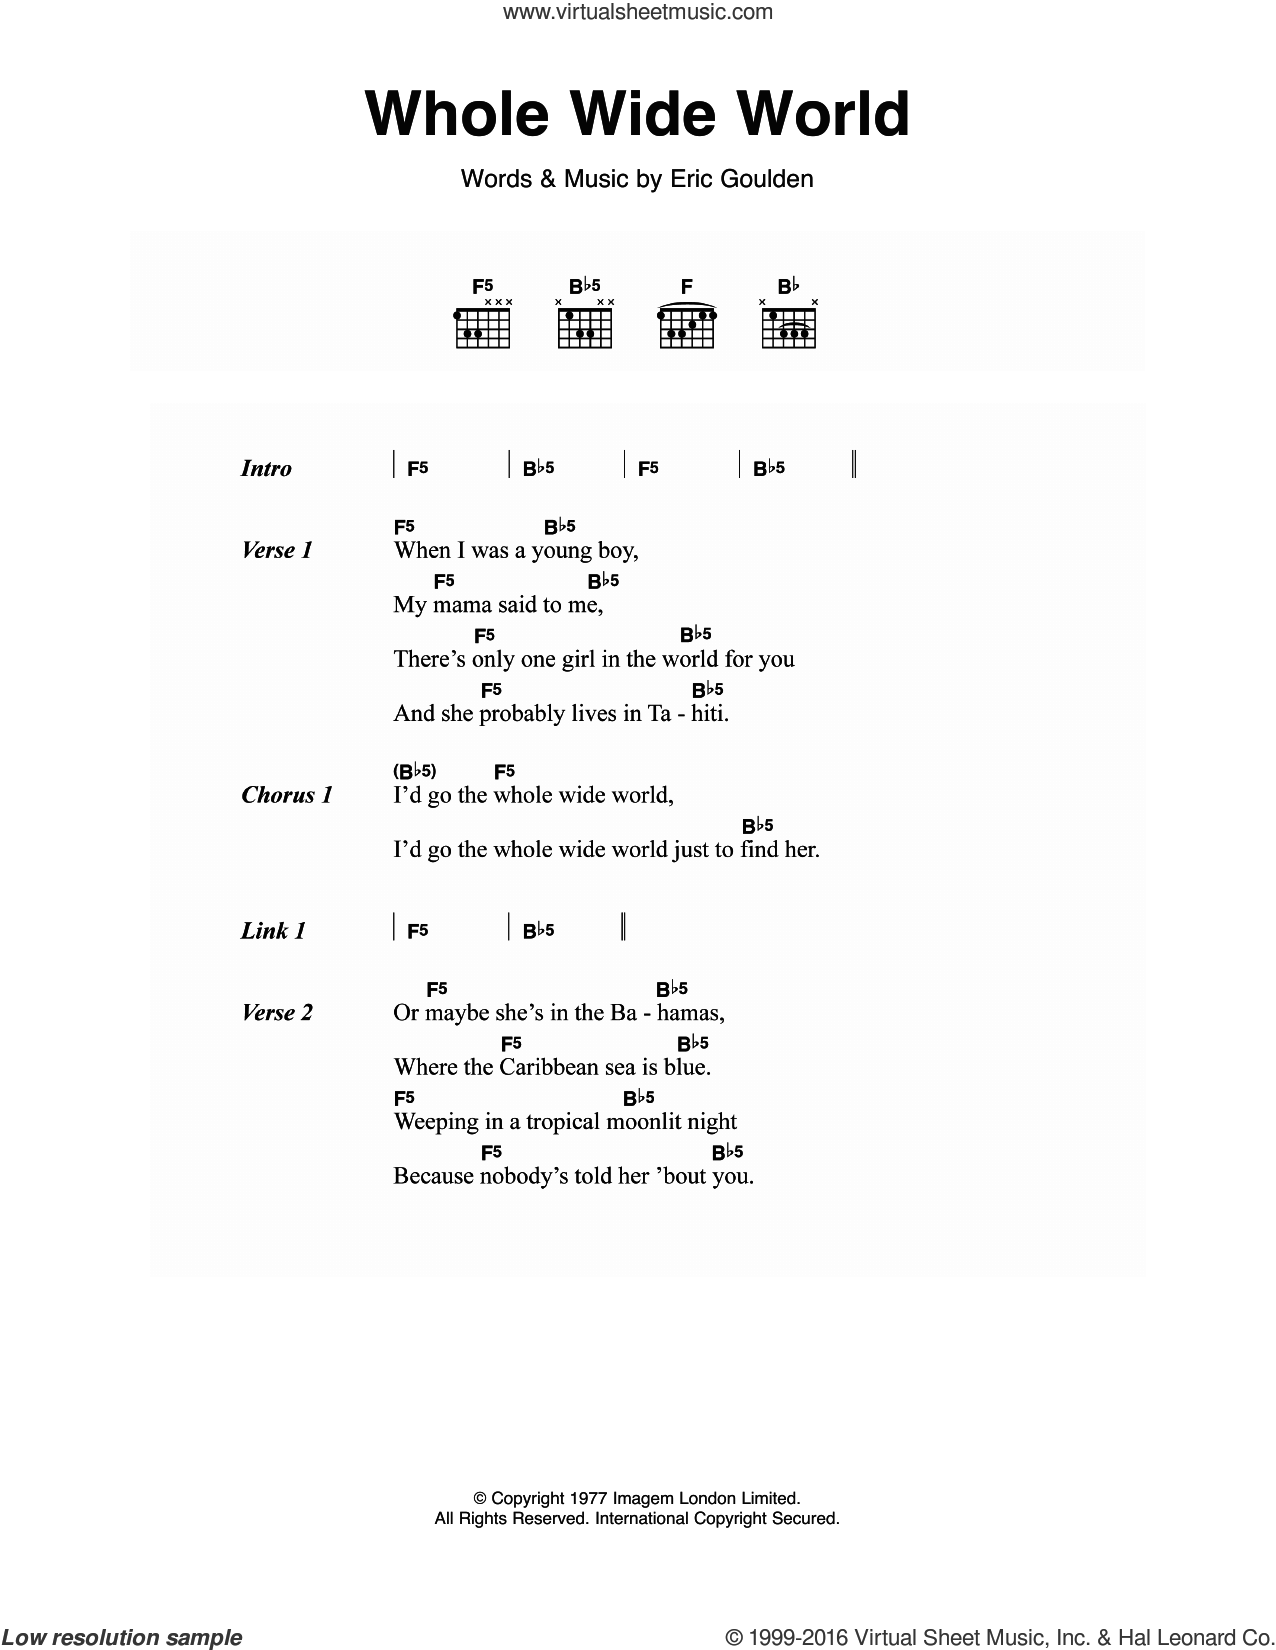 Whole Wide World sheet music for guitar (chords) by Eric Goulden